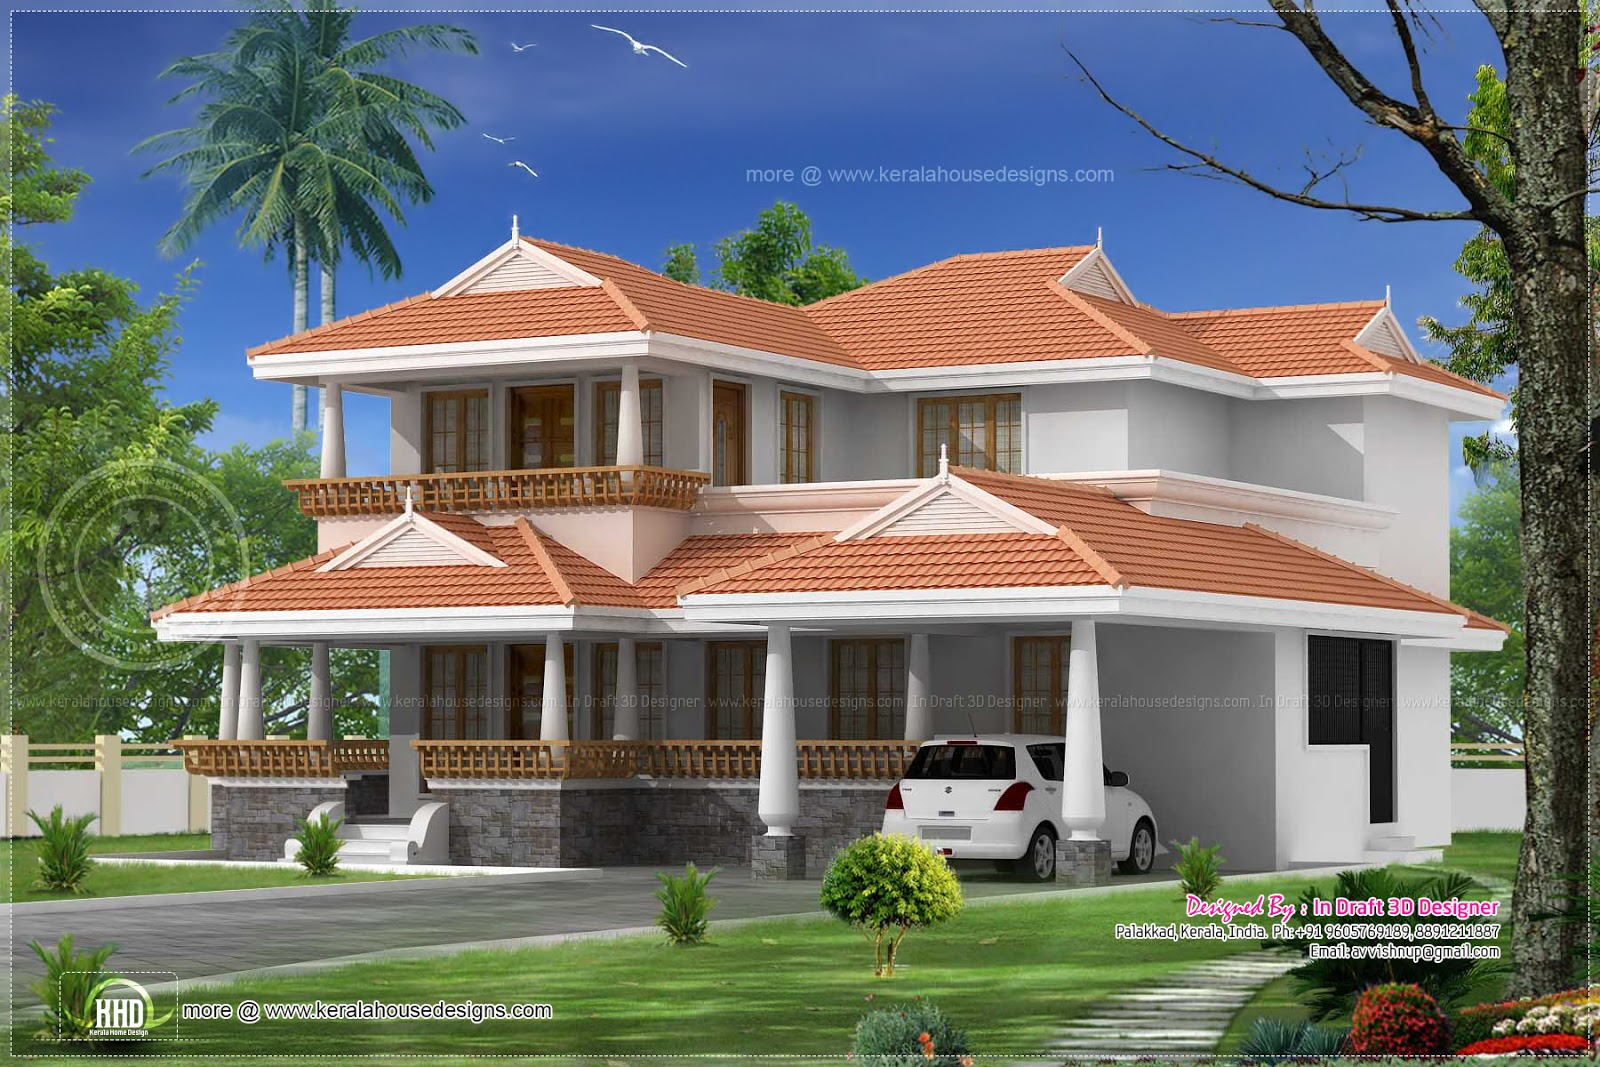 4 bed room kerala traditional villa 2615 sq ft kerala for 3000 sq ft house plans kerala style